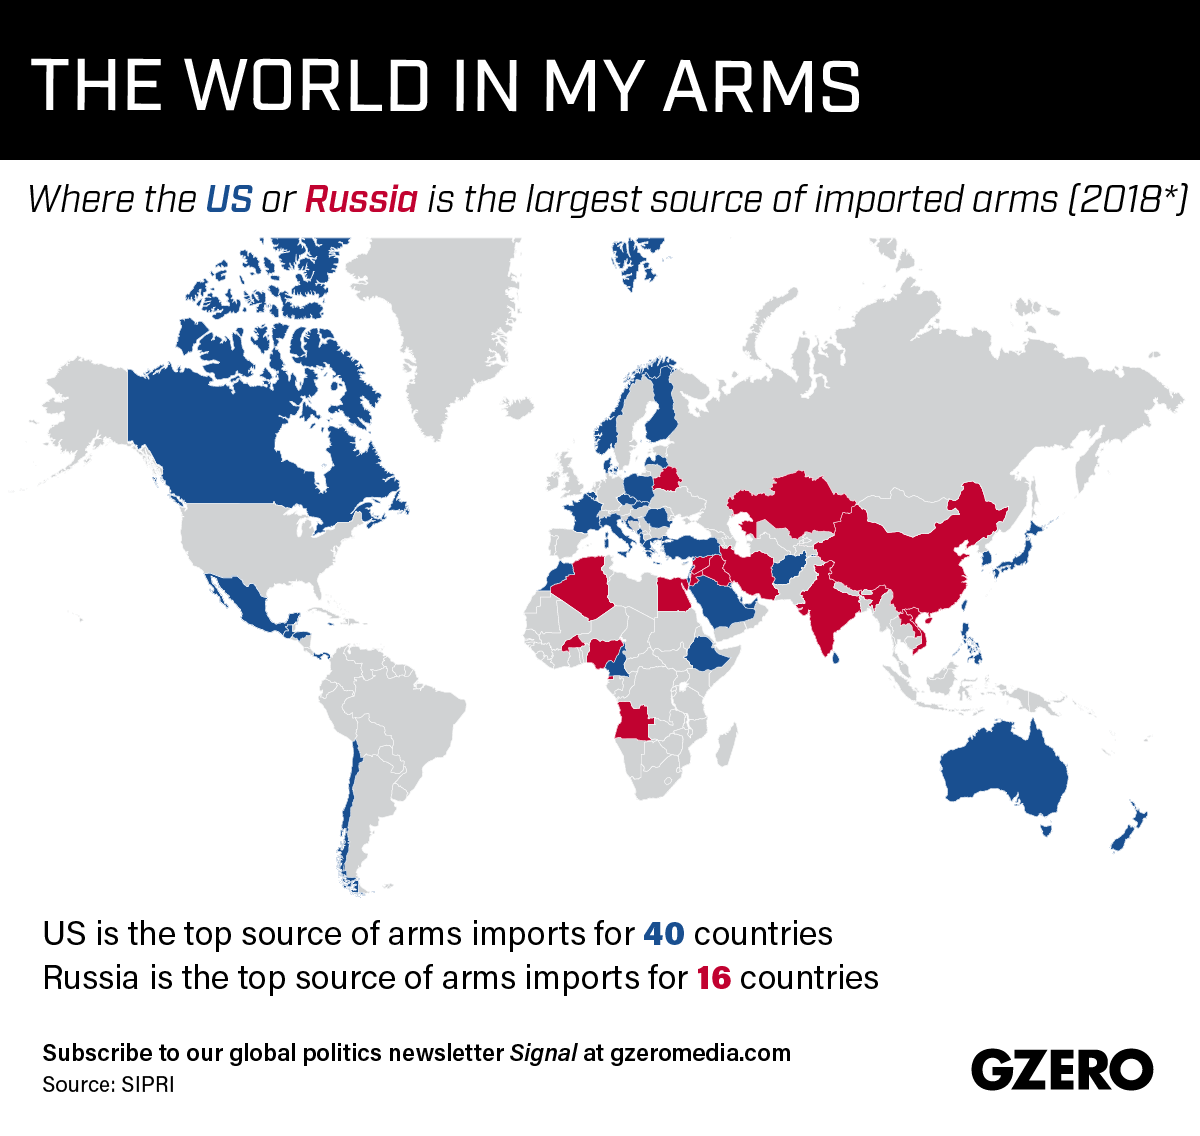 Graphic Truth: Got My Arms Around the Whole World